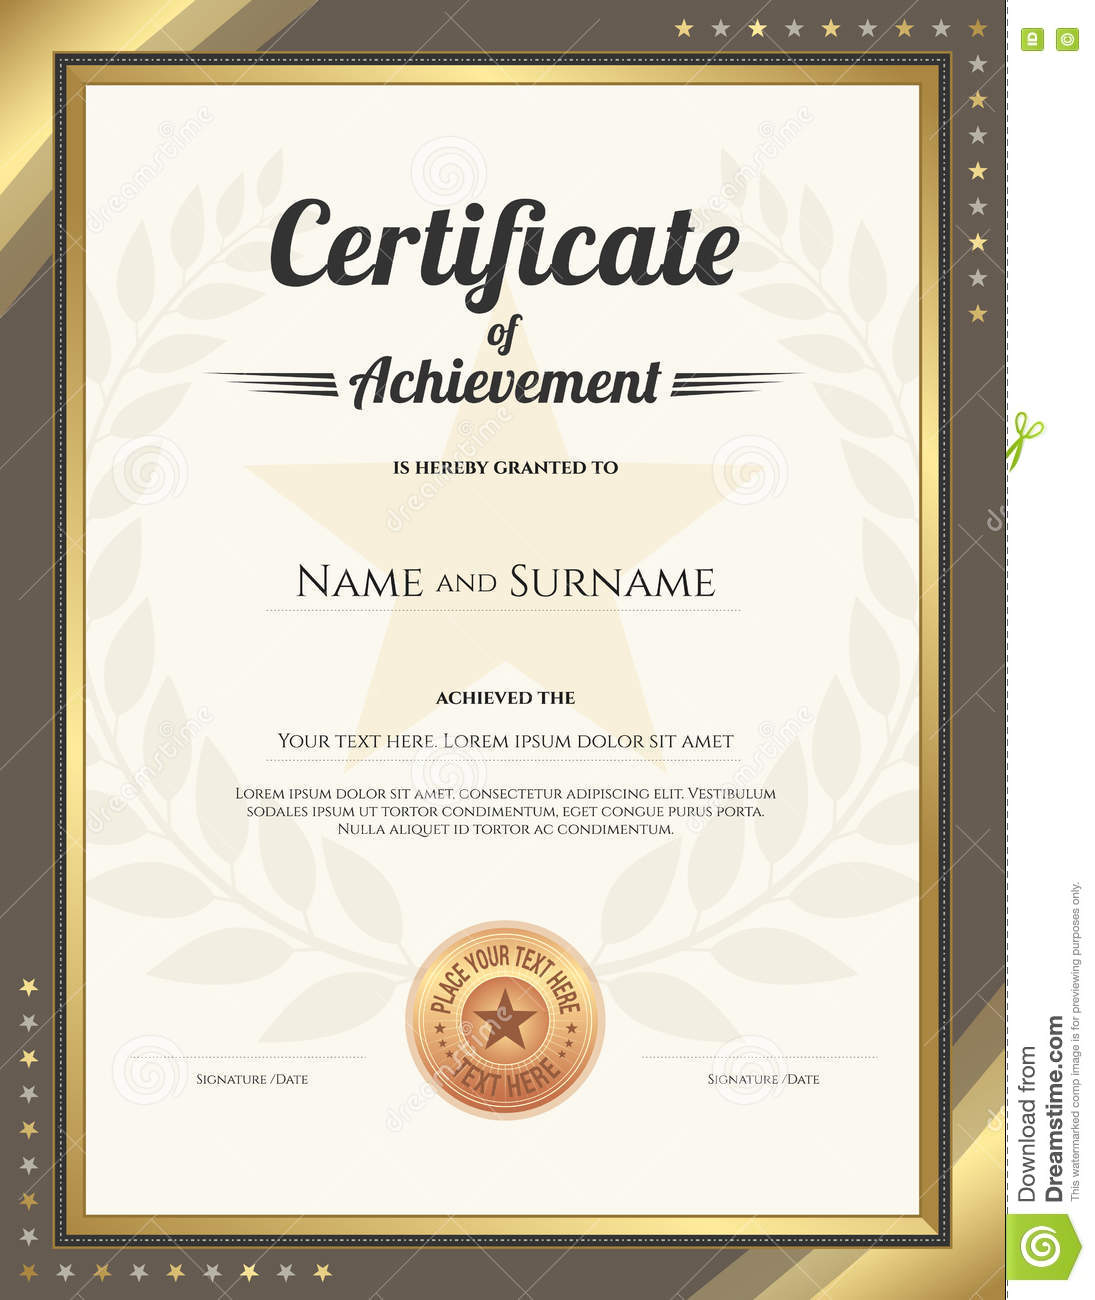 Portrait certificate of achievement template with gold border portrait certificate of achievement template with gold border yadclub Image collections